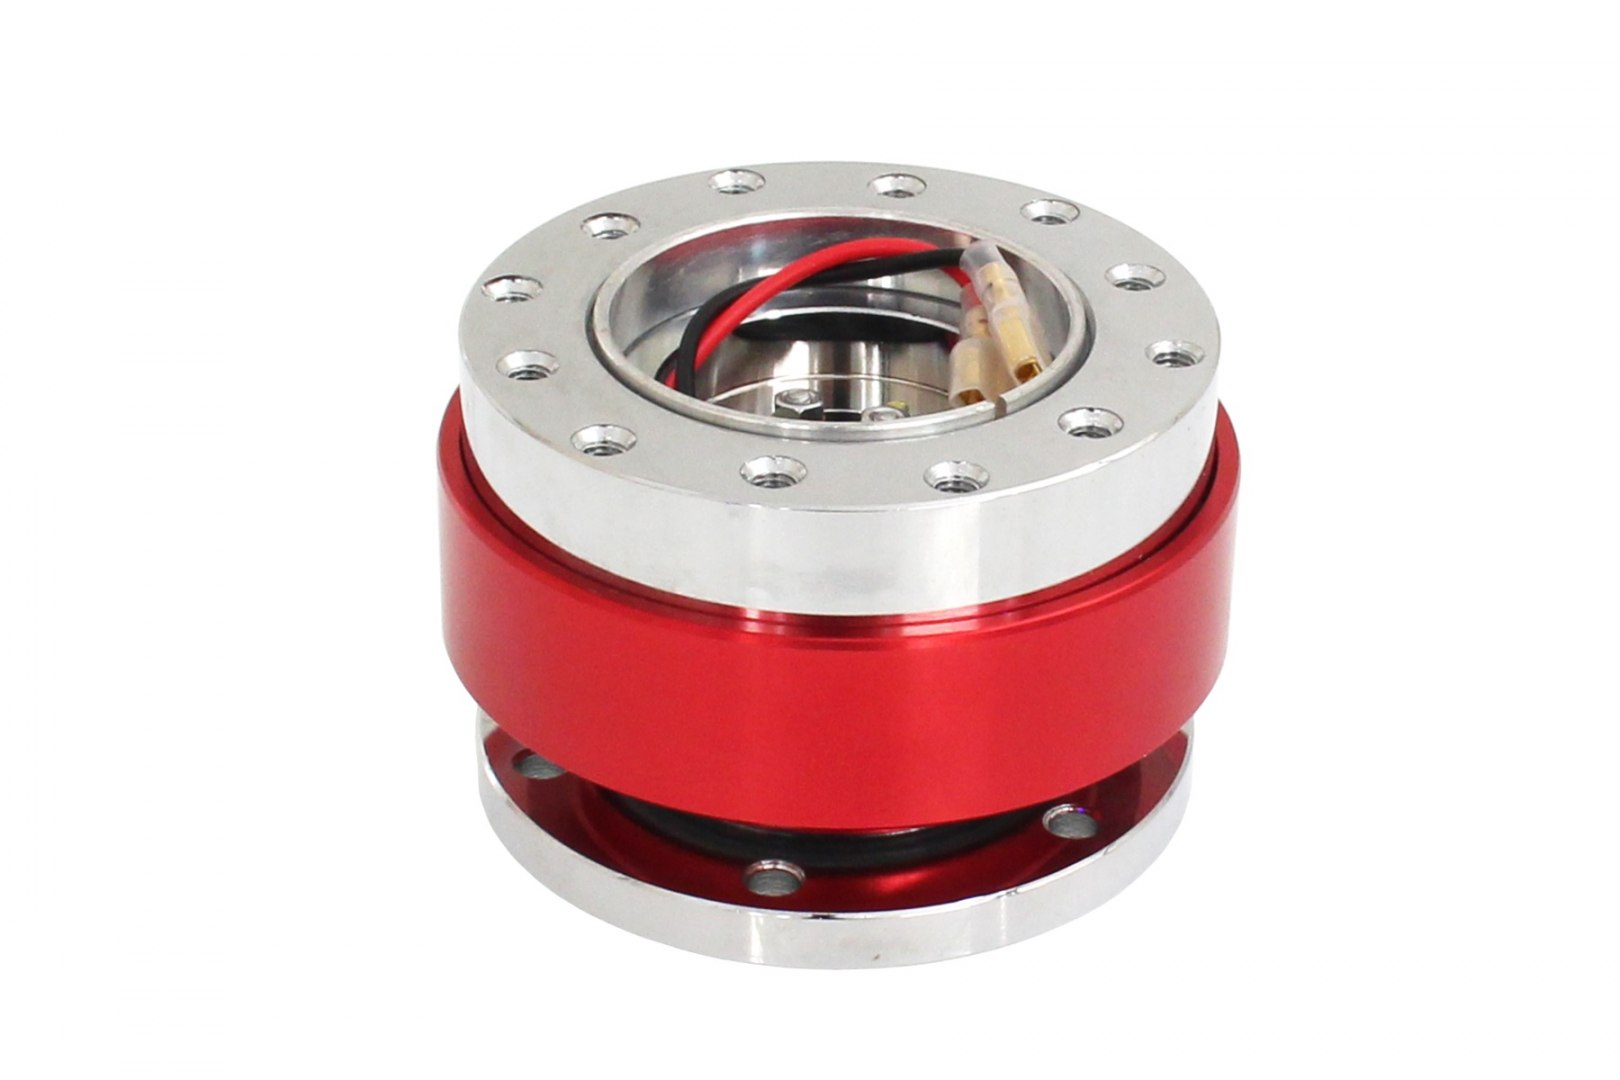 Naba Quick Release Epman Race red - GRUBYGARAGE - Sklep Tuningowy